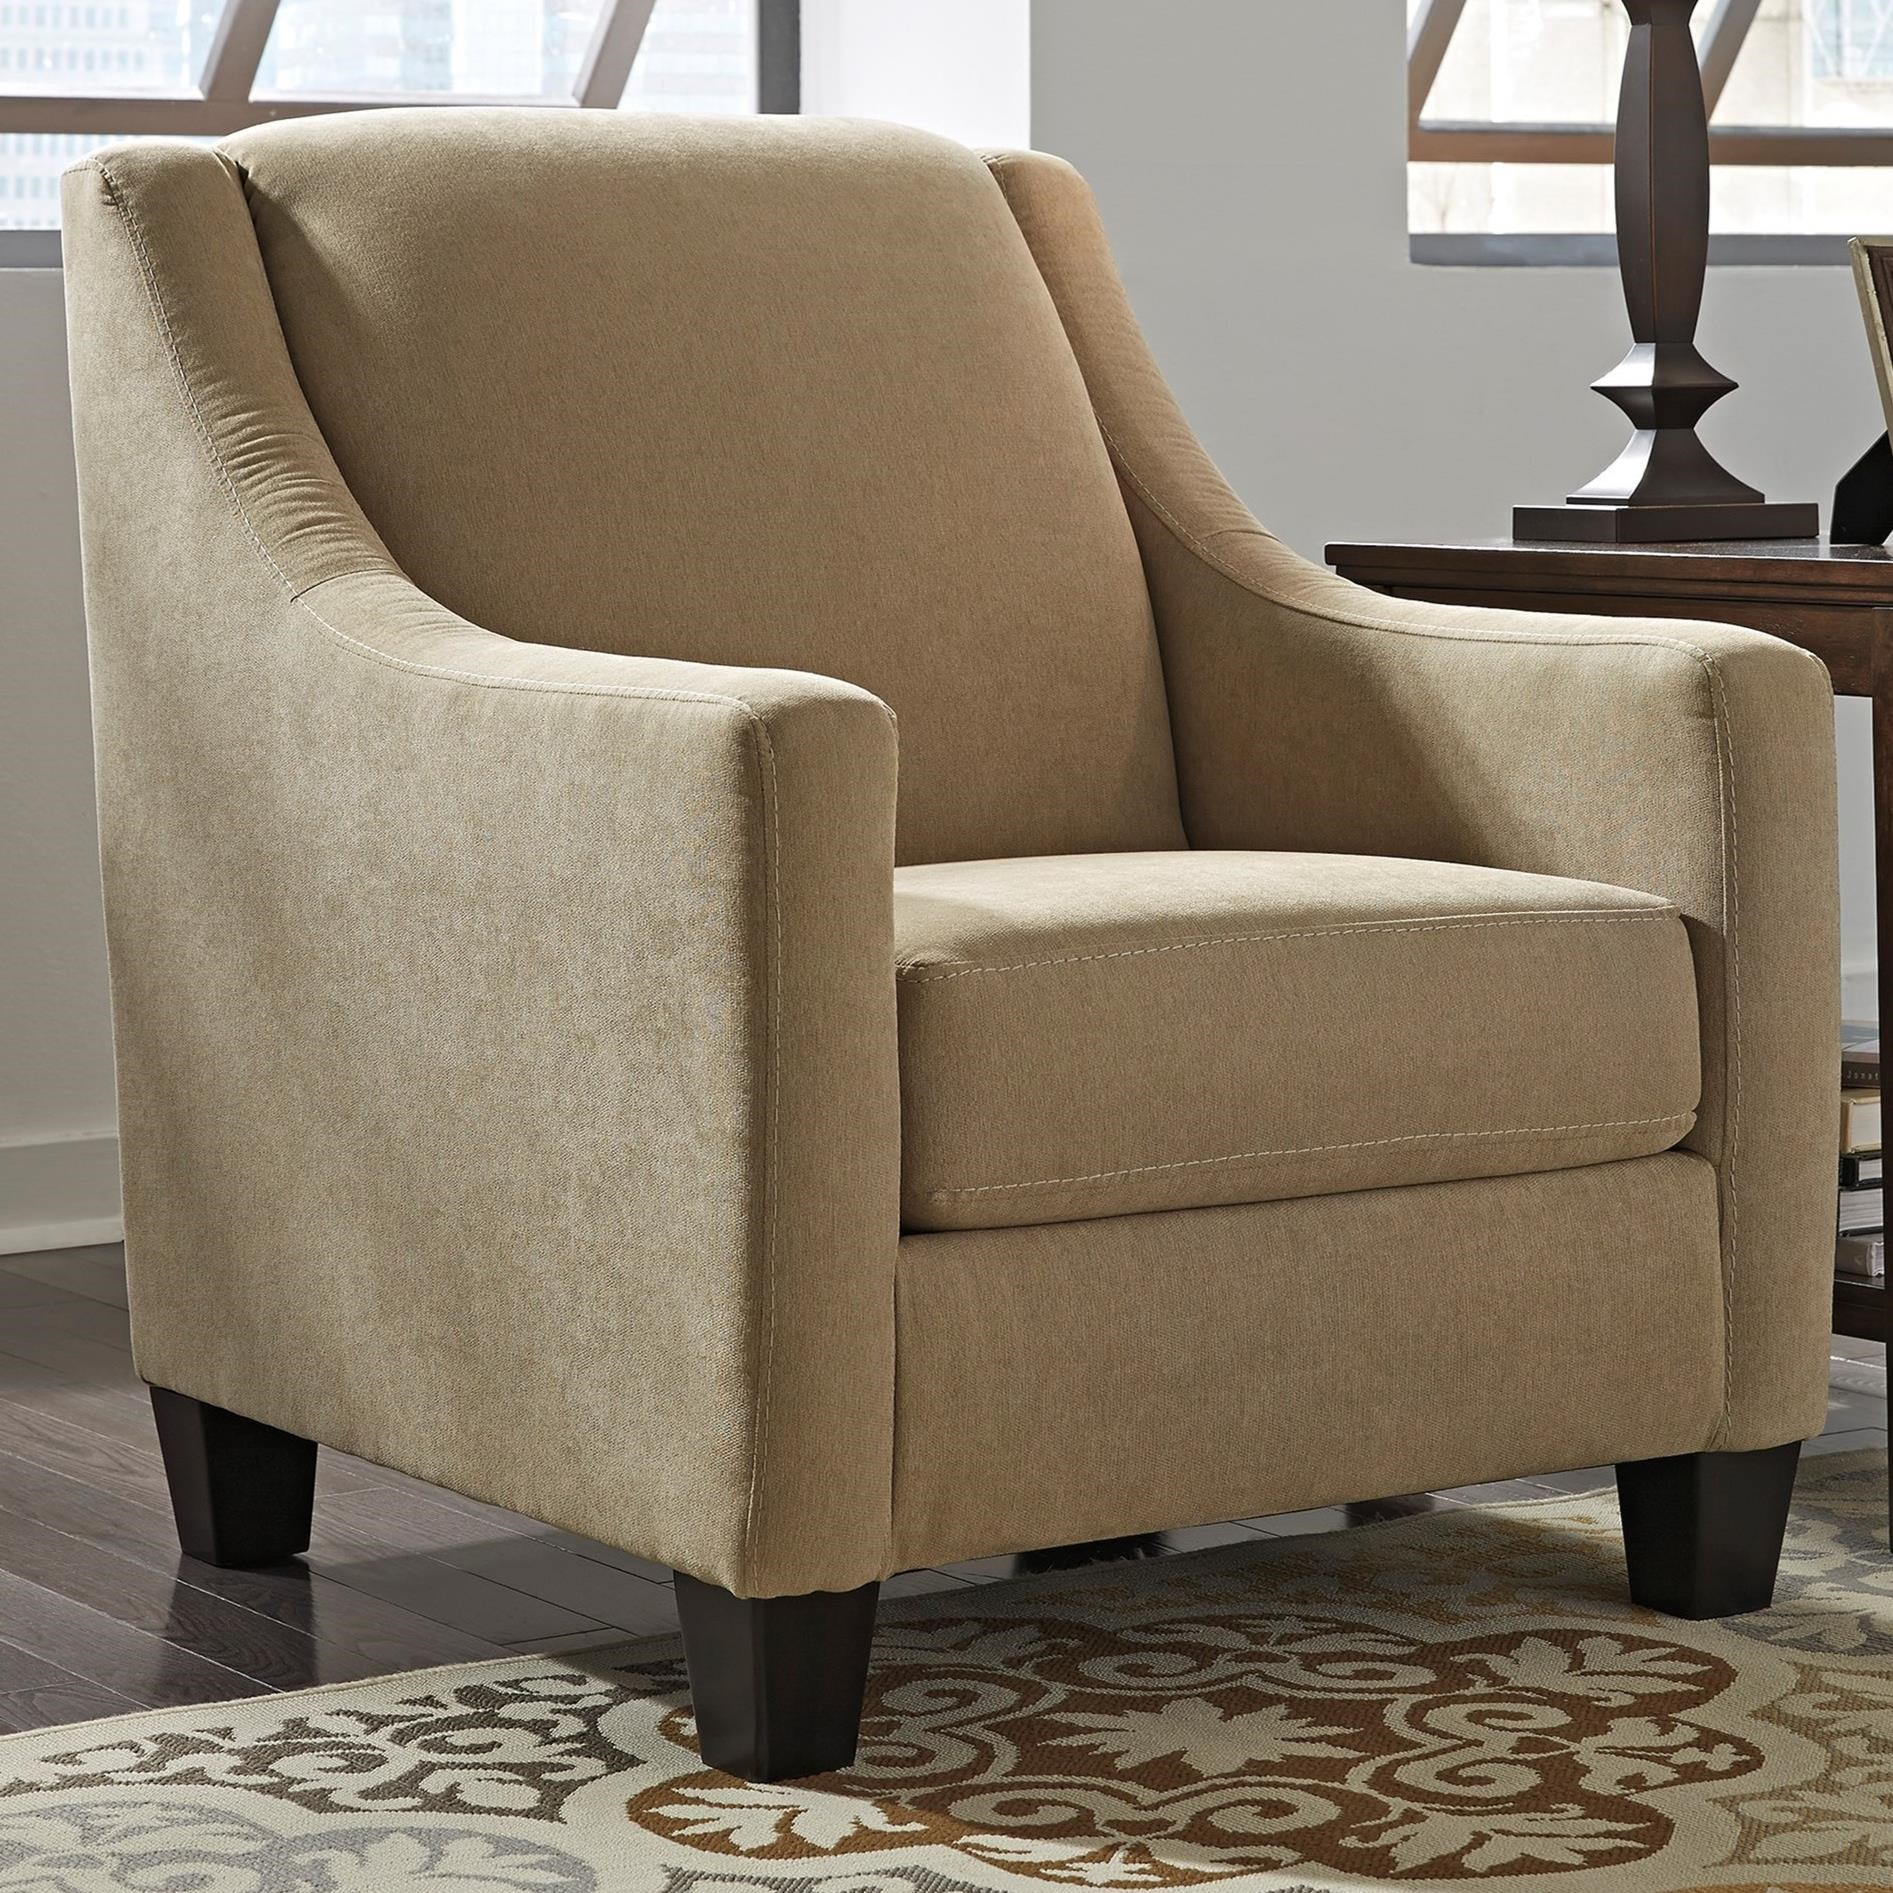 Benchcraft Maier - Cocoa Accent Chair - Item Number: 4520321